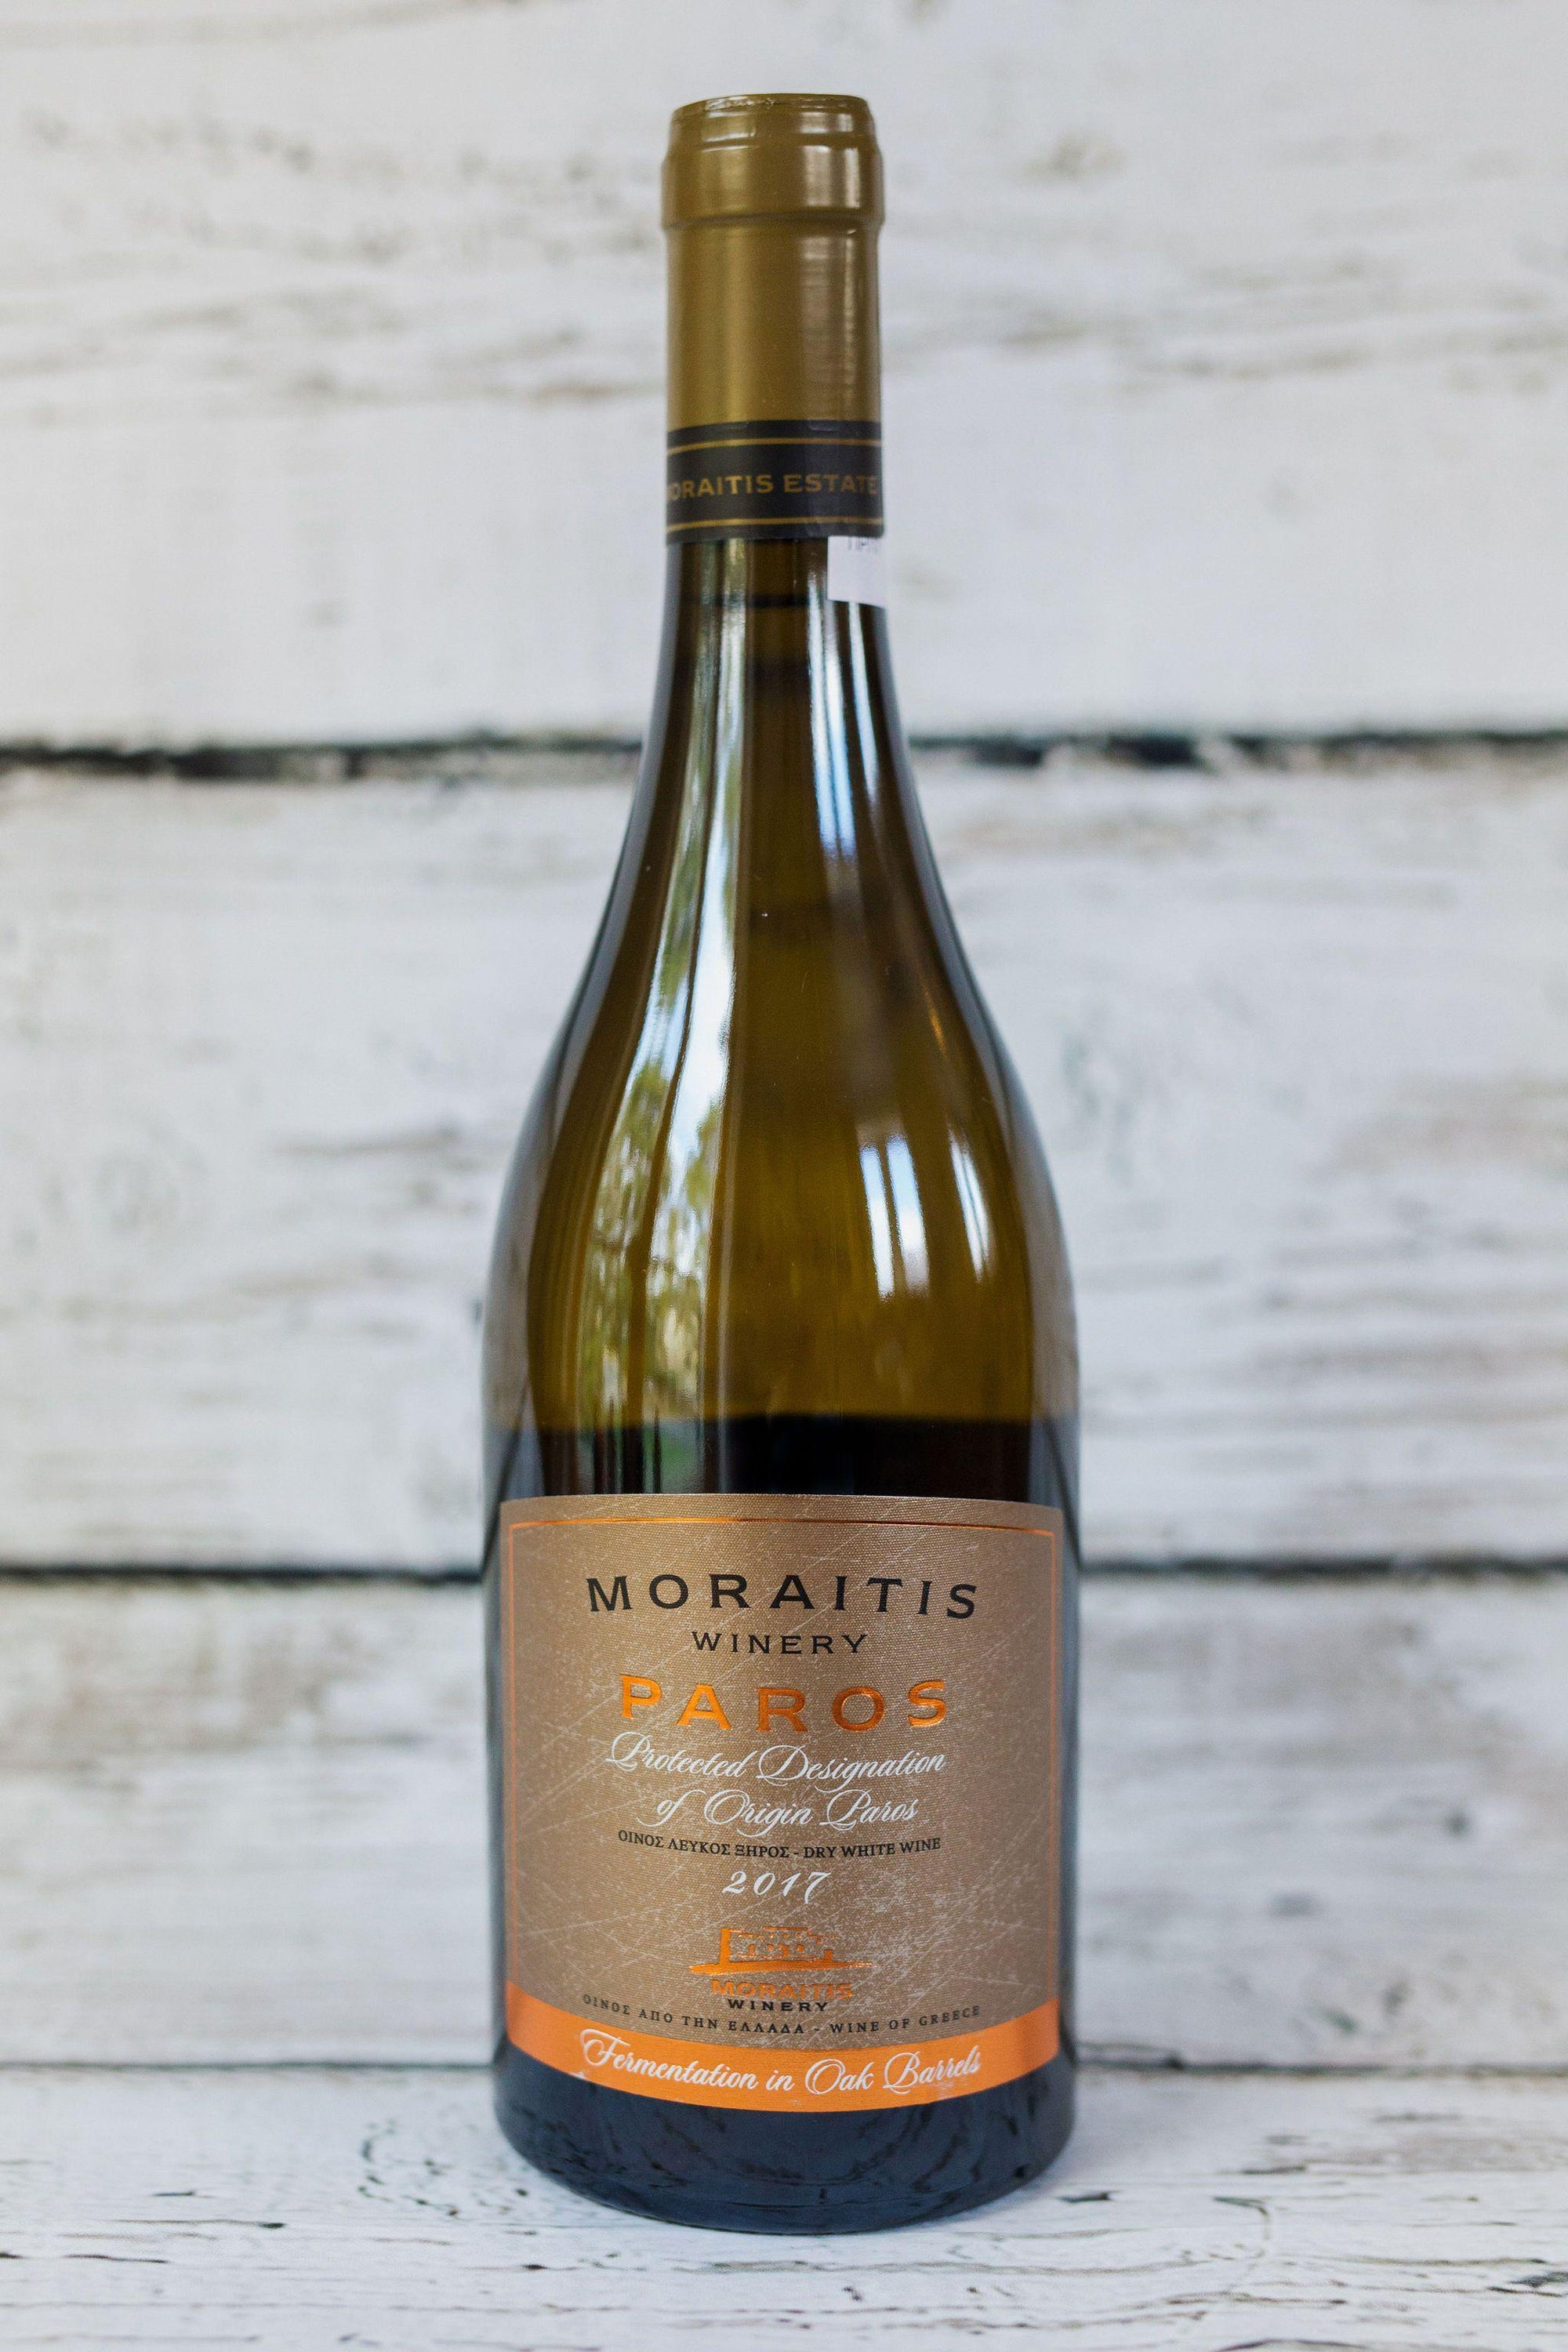 750ml clear glass bottle of Moraitis Paros white Wine with front label and brown foil cap